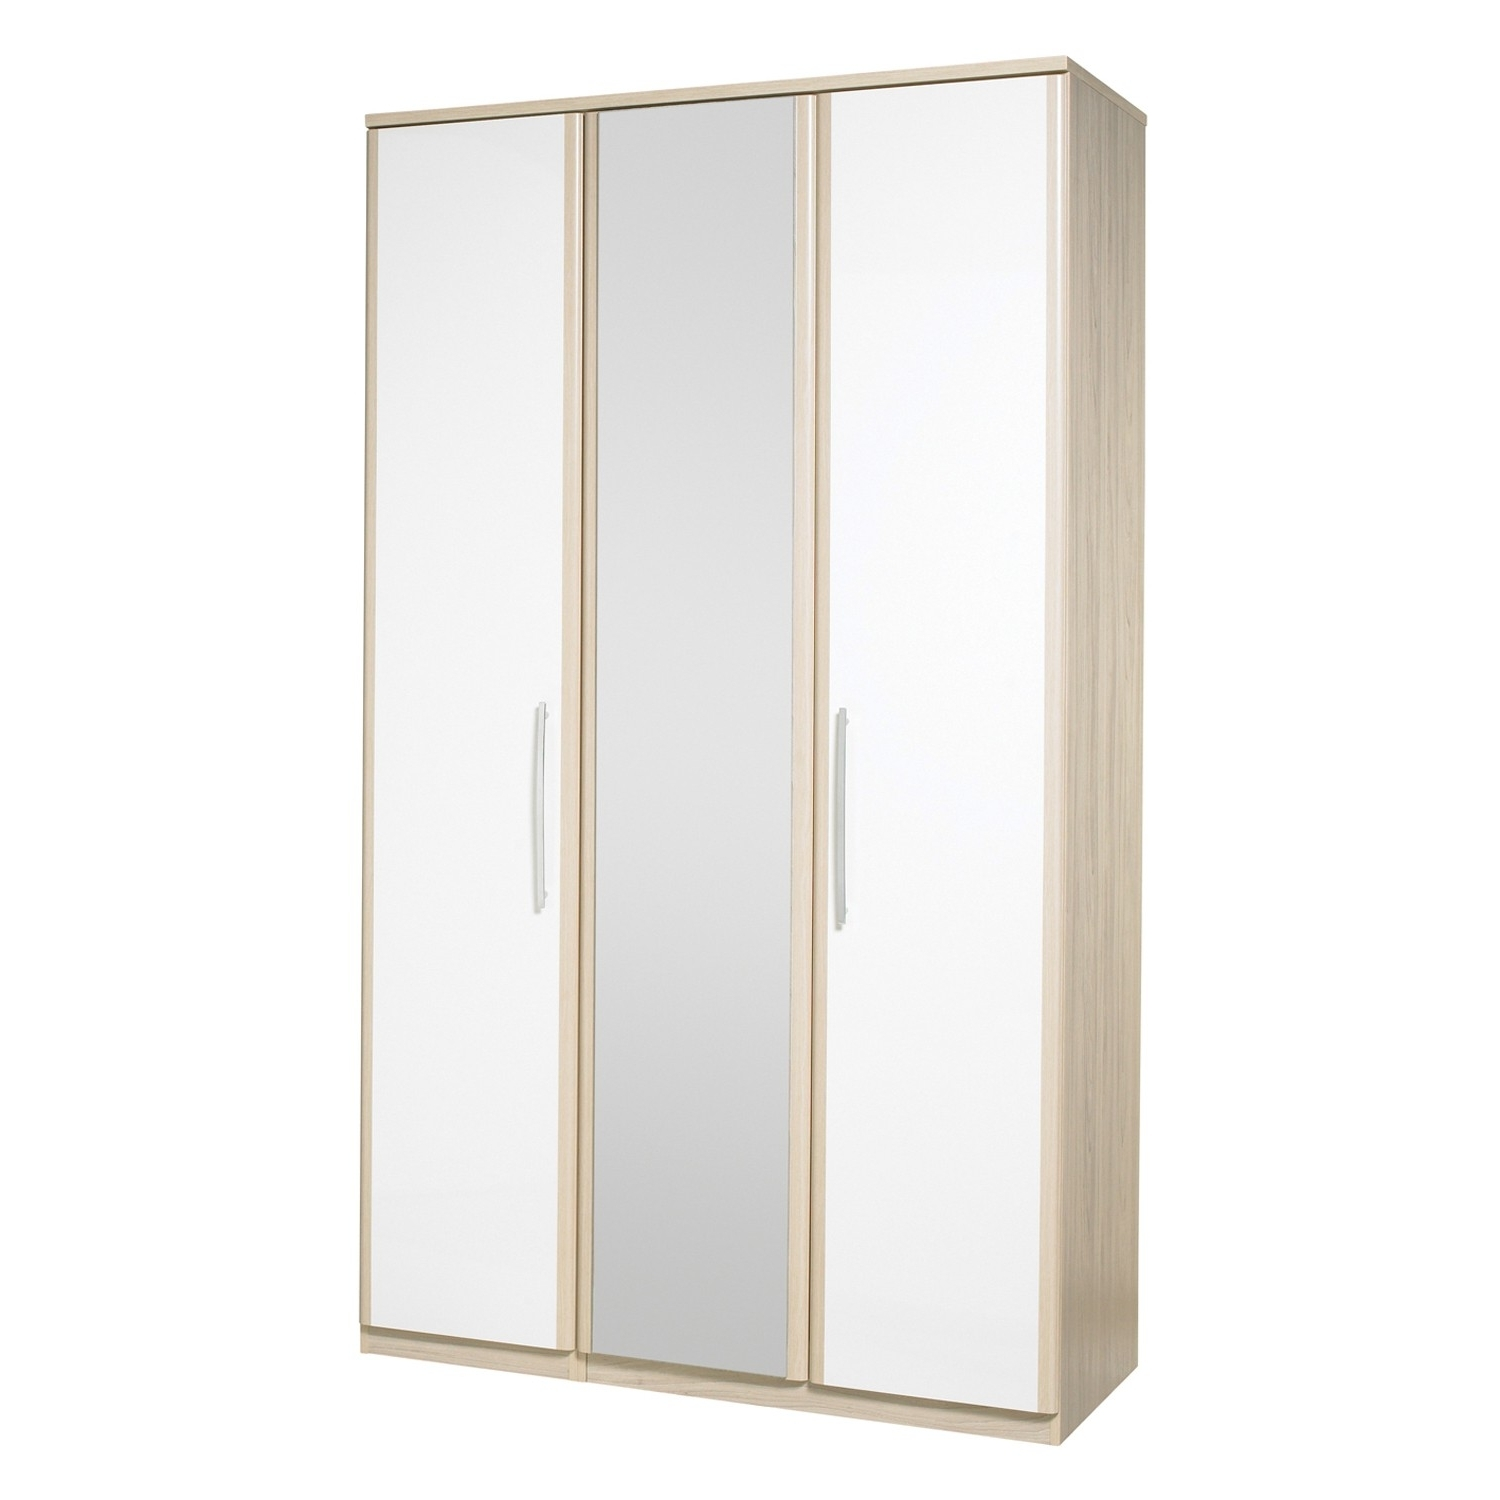 3 Doors Wardrobes With Mirror Pertaining To Current White Wardrobe With Mirror Ebay 3 Door And Drawers Gloss You Will (View 3 of 15)